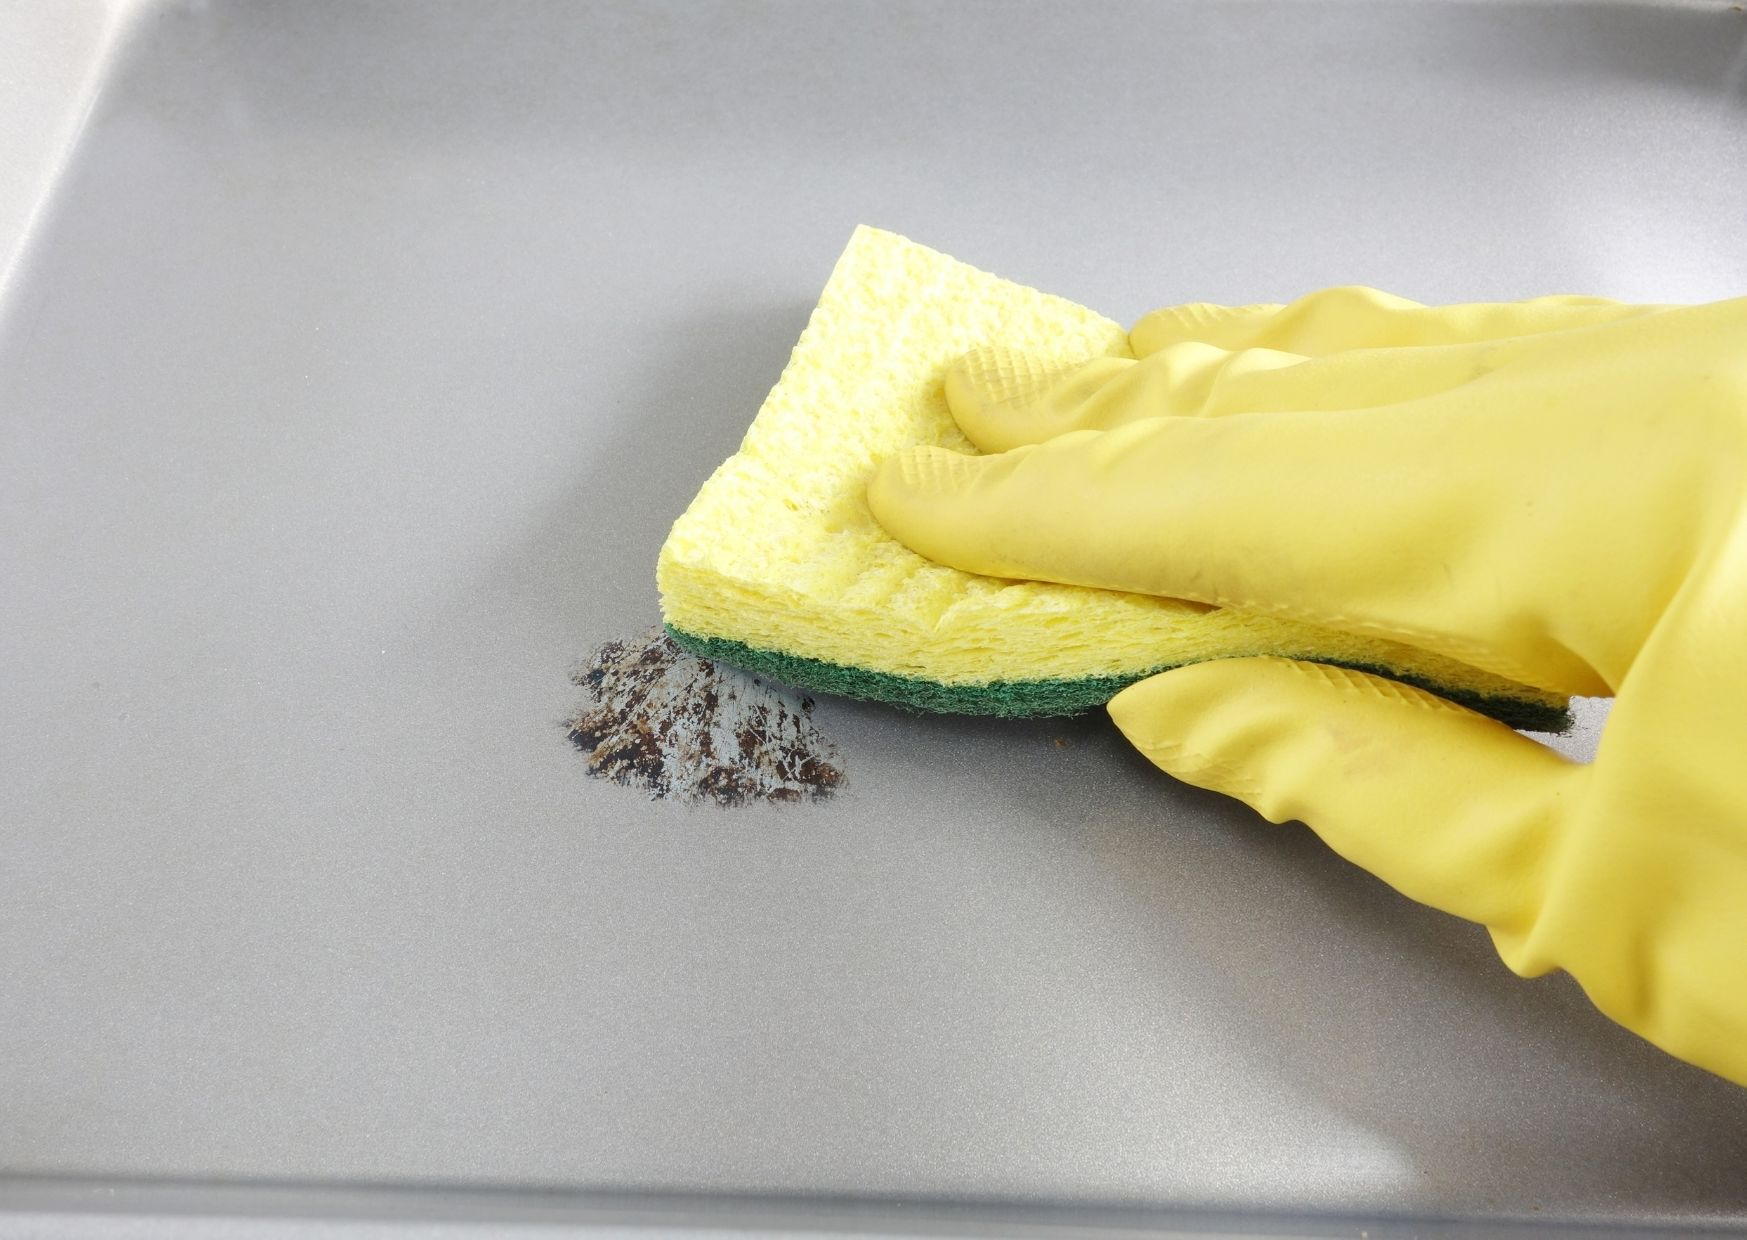 What is the best kind of cleaning agent for burned-on grease?